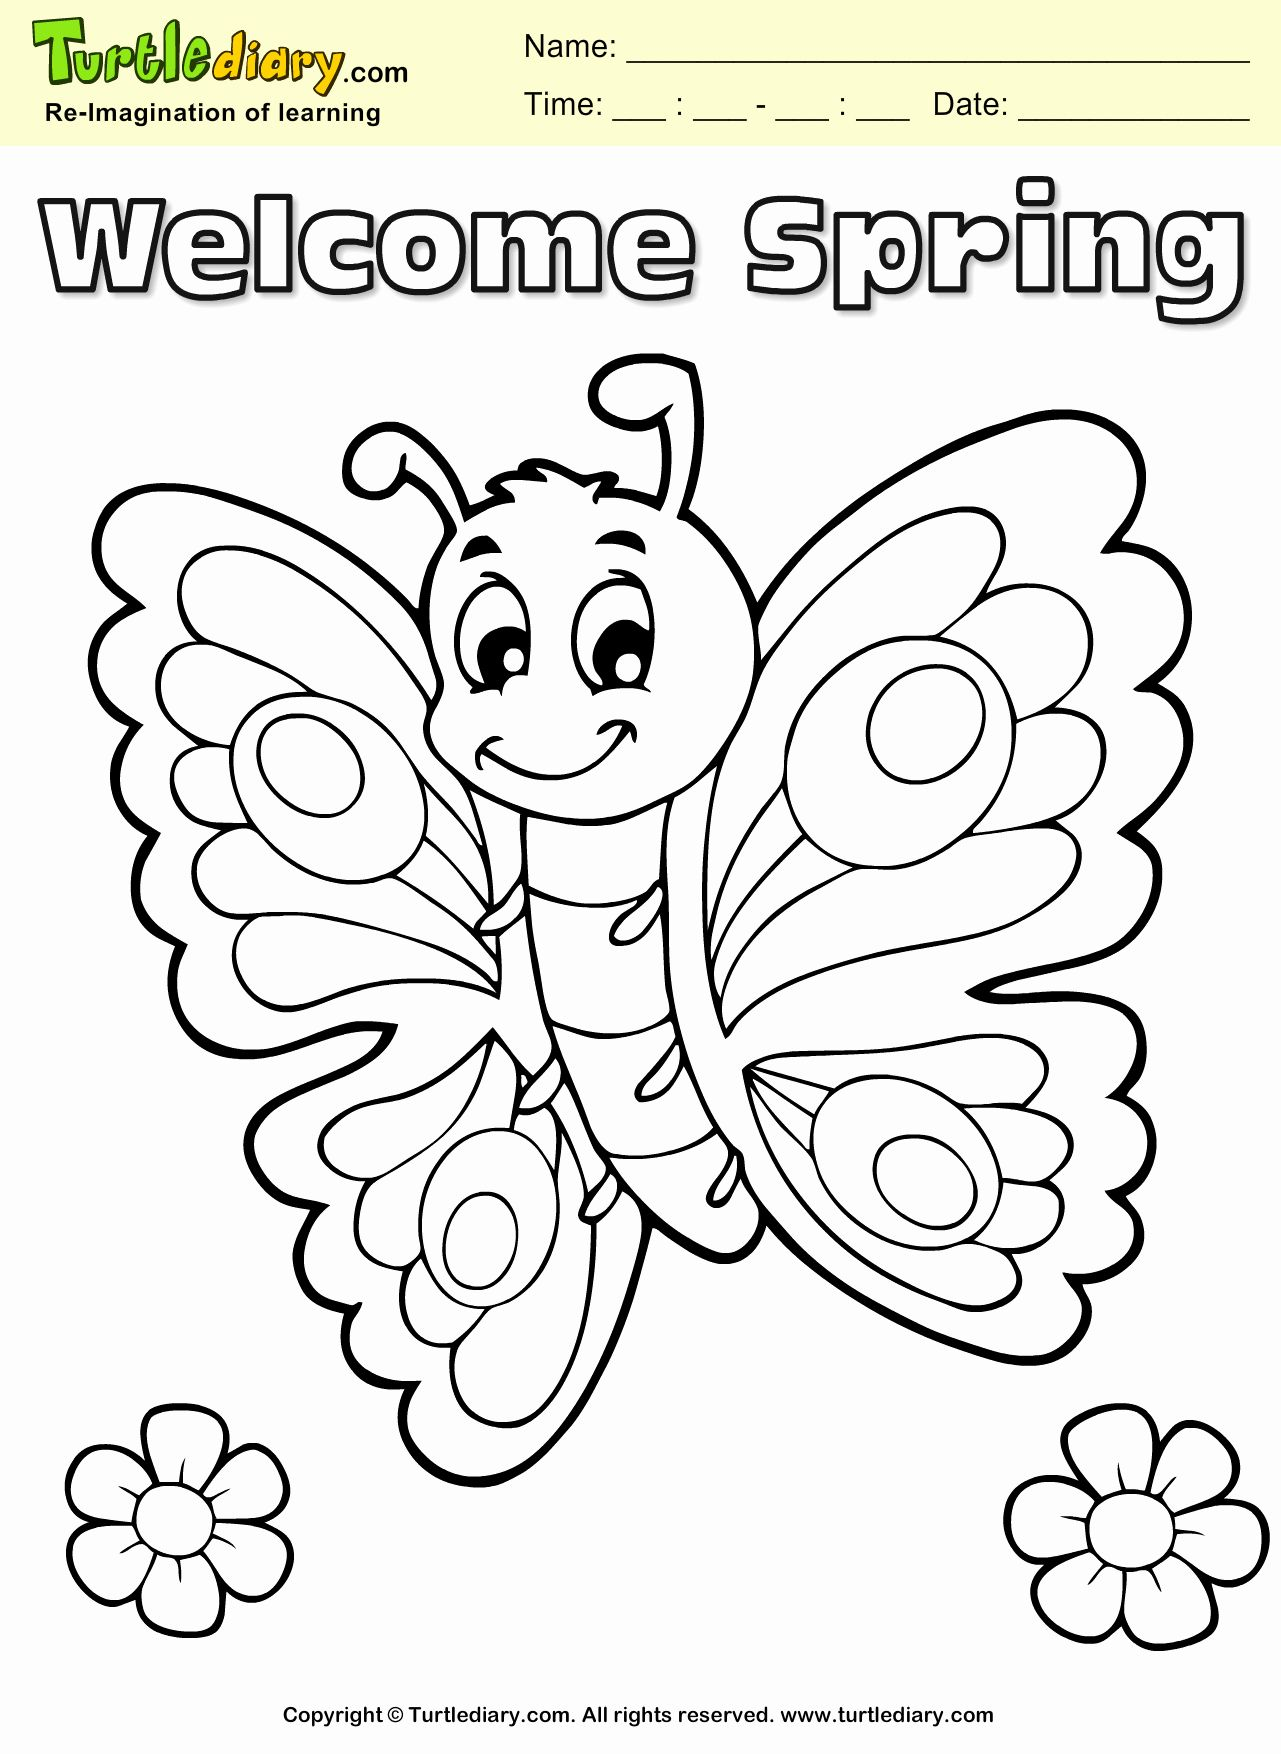 Spring Printable Coloring Pages Fresh Butterfly Coloring Sheet In 2020 Spring Coloring Sheets Butterfly Coloring Page Spring Coloring Pages [ 1754 x 1281 Pixel ]